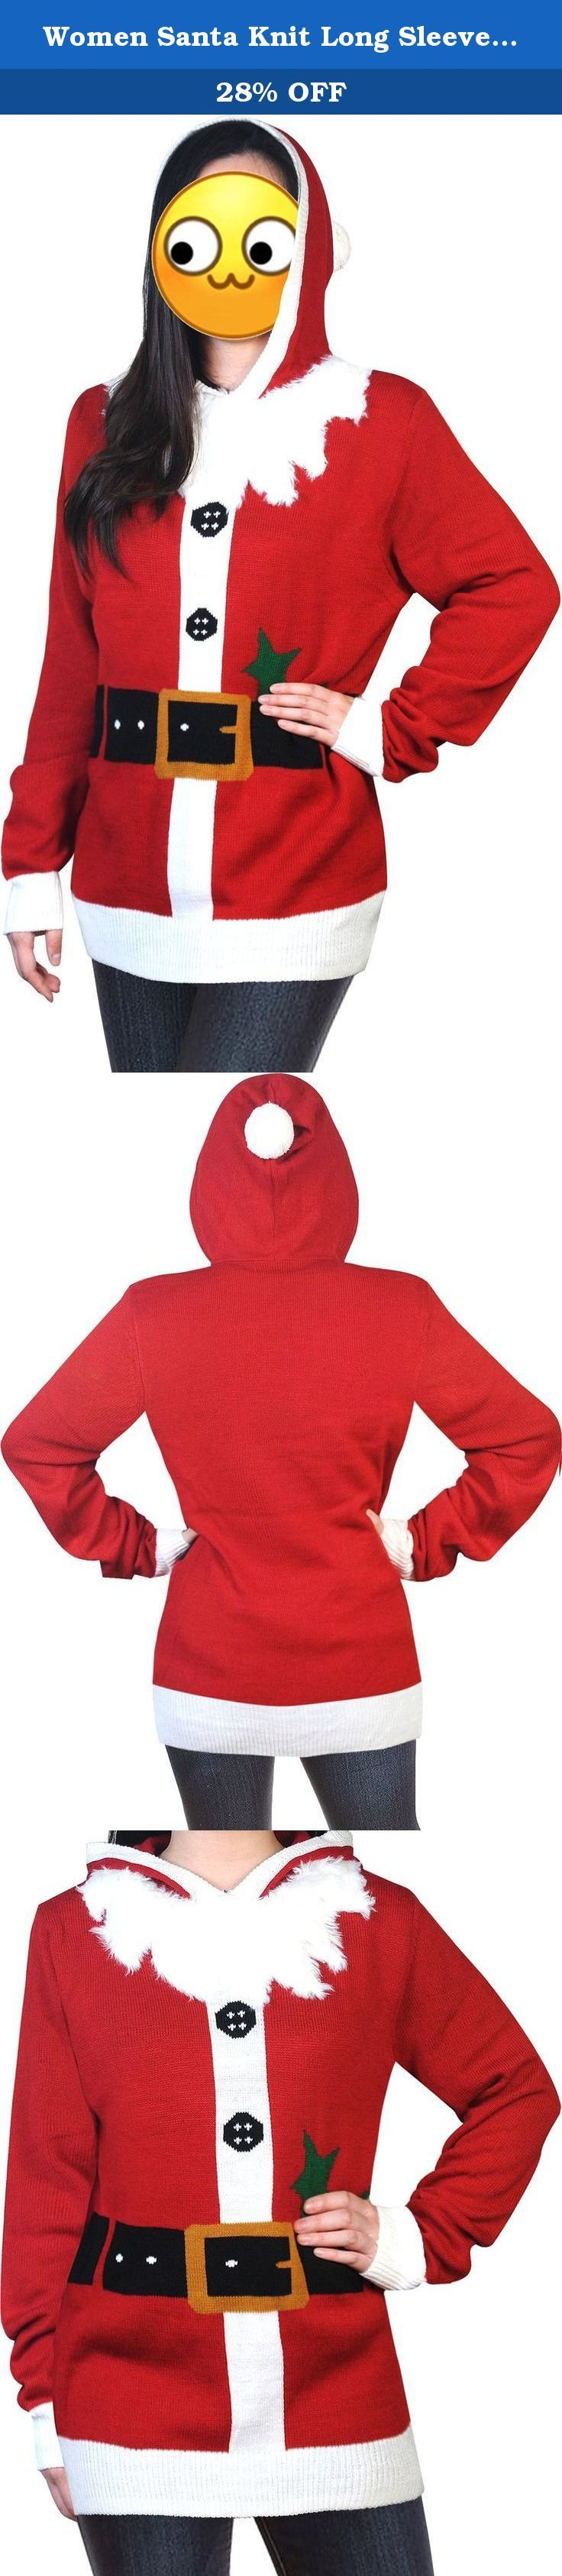 Women Santa Knit Long Sleeve Christmas Pullover Fleece Sweater Xmas Sweatshirt Jumper Red L. For G and PL Women's Ugly Christmas Sweaters / Cardigans / Sweater Dress 100% Premiere Acrylic Ugly Christmas Sweater Made For G and PL. Well Made Double Panel Construction and Reinforced Seams. Fast Ship(FBA):Fulfilled by Amazon with two-day Shipping (Ship from USA) Size of our products is Matching With US Size, Fits to Amazon Regular Women Sweaters Size! Fits True to Size.Please See size chart…